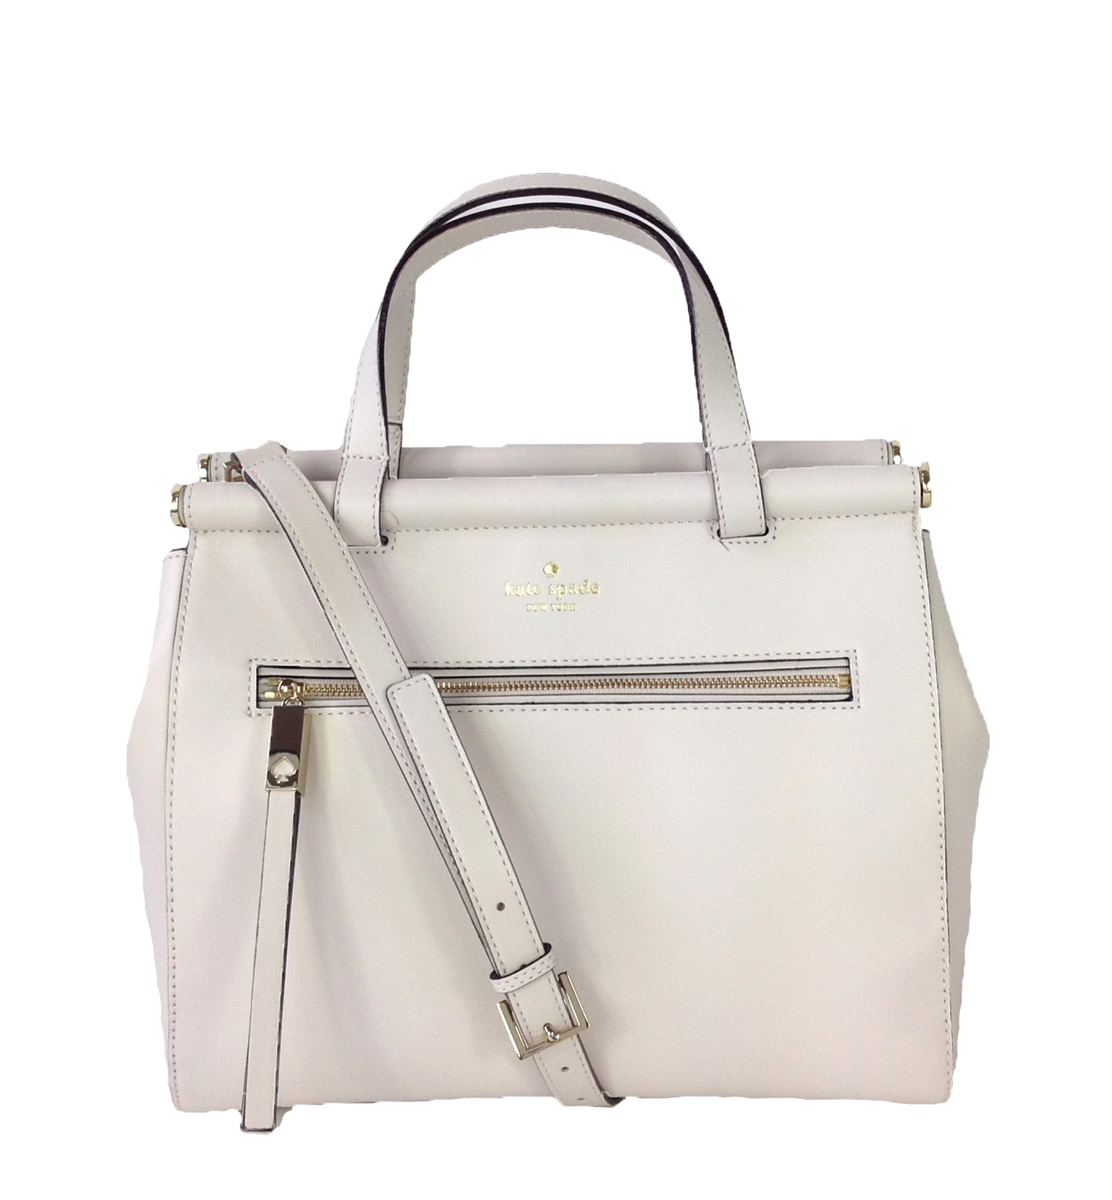 86cf27947615 Kate Spade Royal Place Cherise Leather Satchel, Horchata (Off-White)